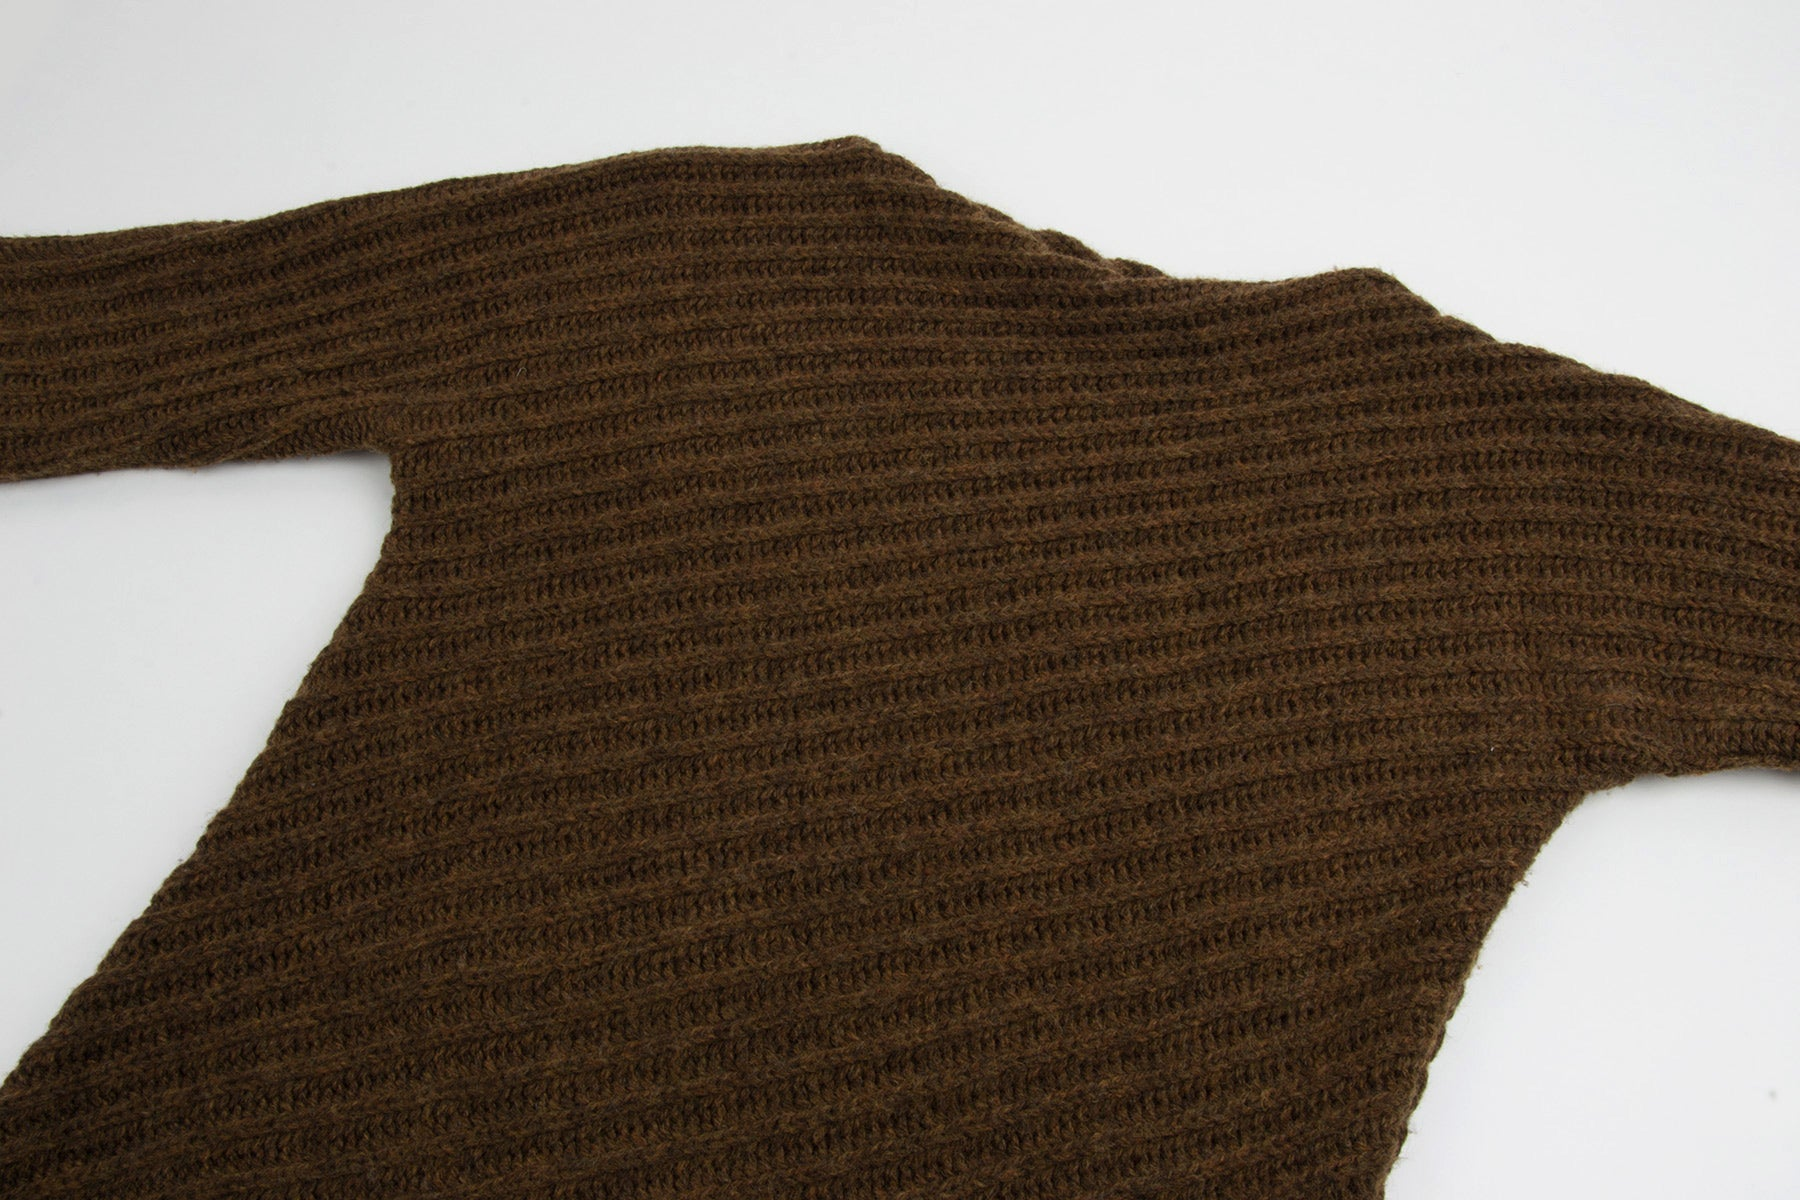 1995 A/W DIAGONAL ASSYMETRIC RIBBED SWEATER BY MISS DEANNA